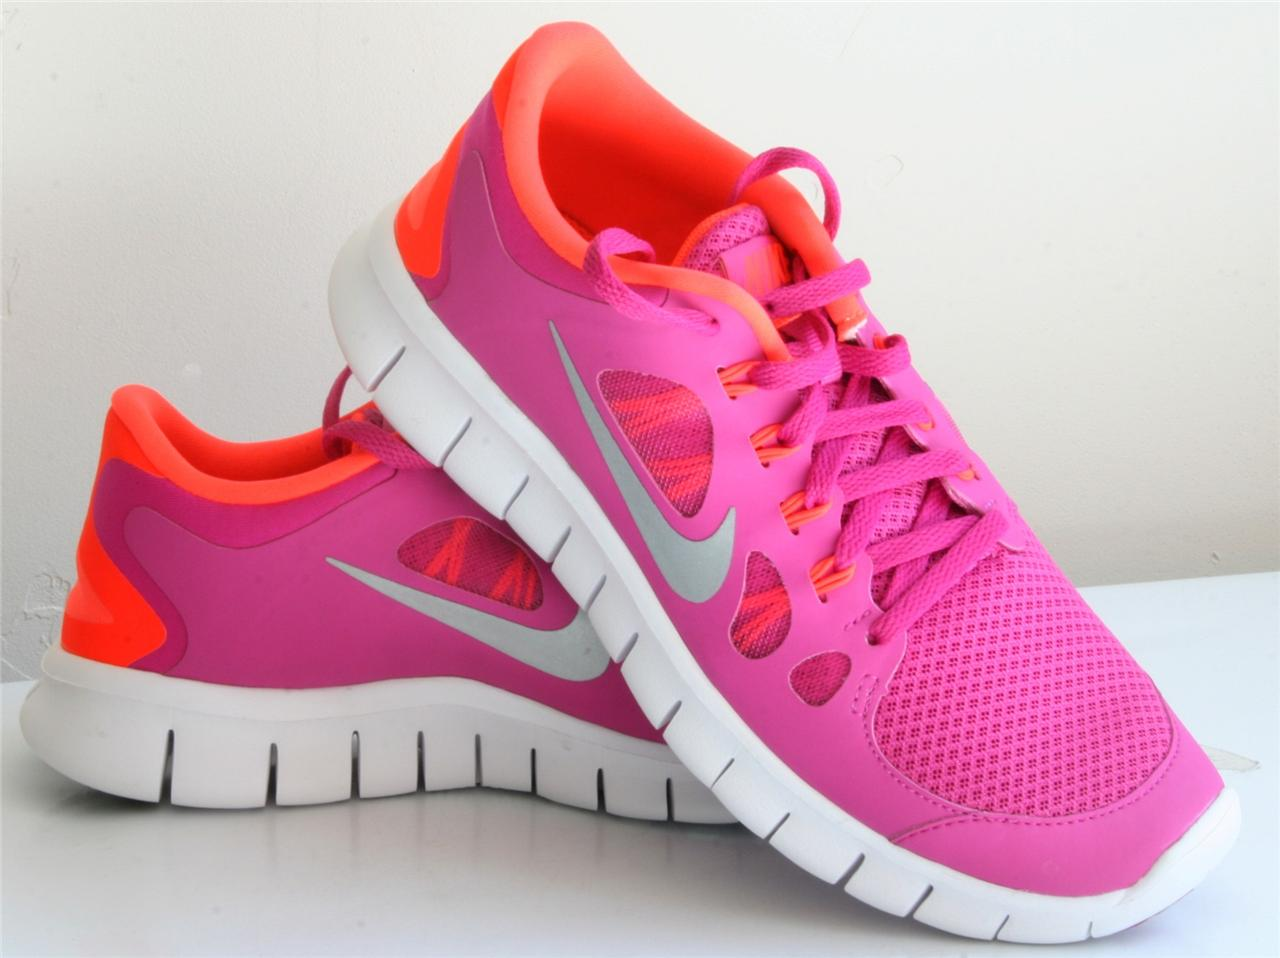 New NIKE Free Run 5.0 GS Running Shoes Womens/Youth 7.5 8 ...